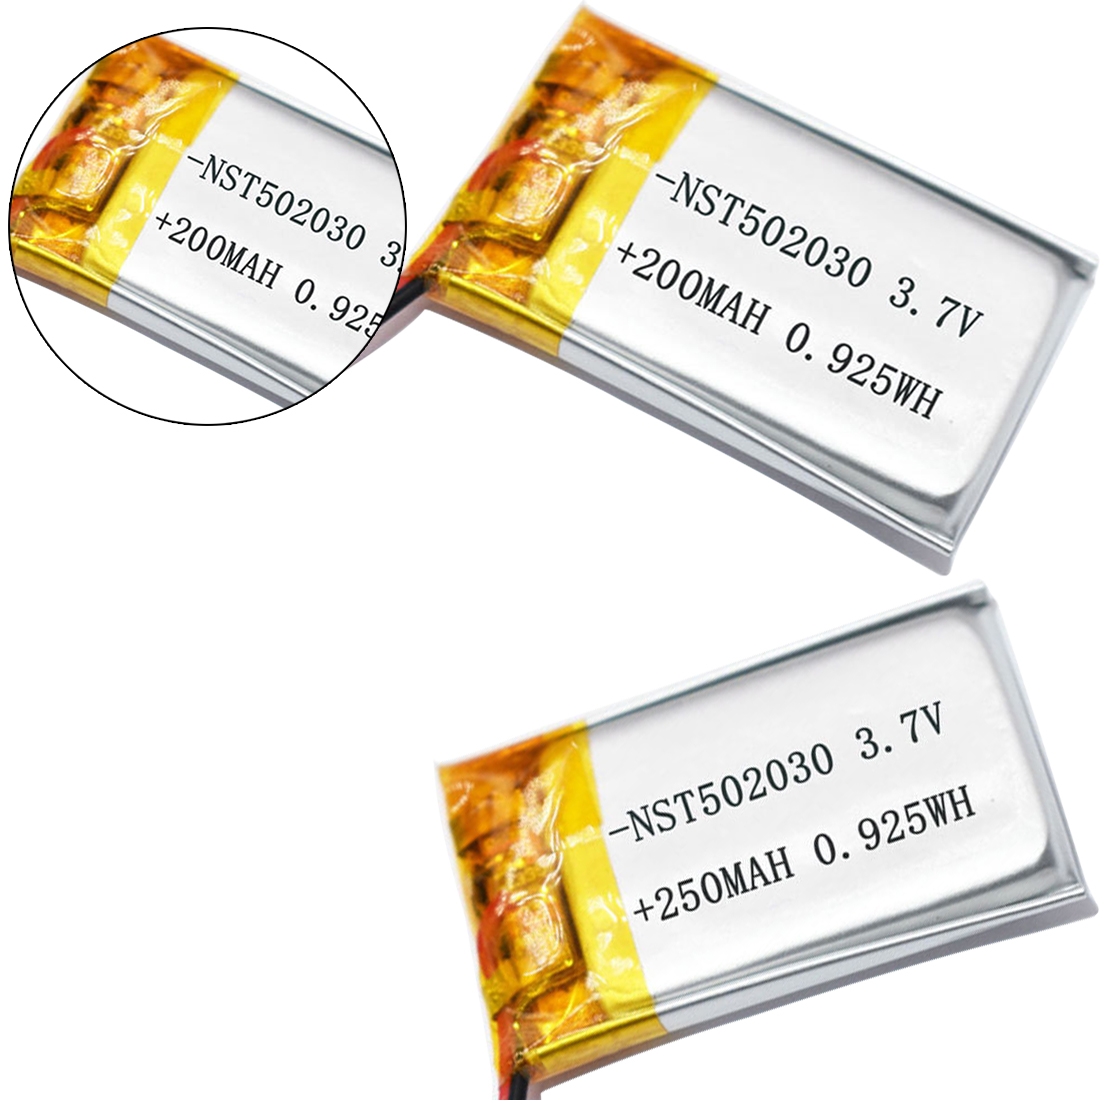 200mAh 250mAh 3.7V <font><b>502025</b></font> Lithium Polymer Li-Po Li ion Rechargeable <font><b>Battery</b></font> Lipo Cells For MP3 MP4 Toys Speaker Tachograph POS image